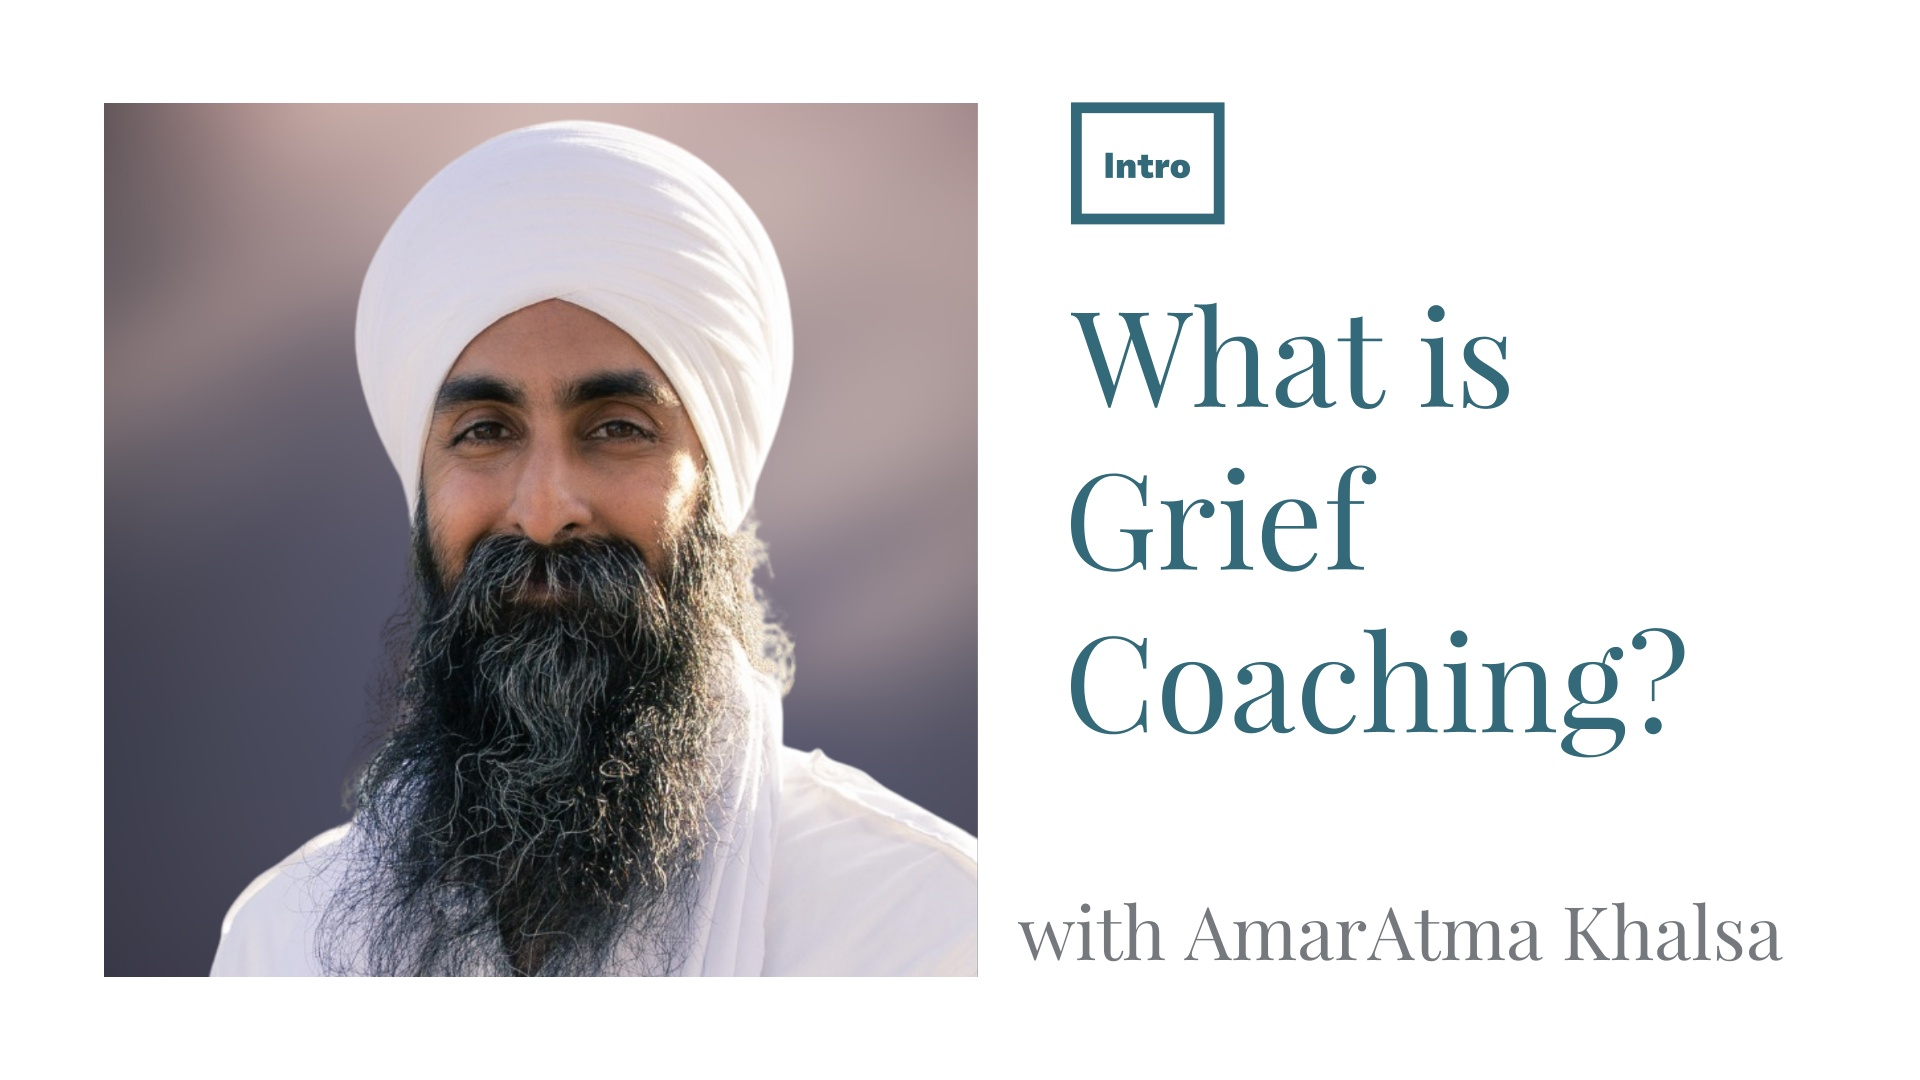 Intro to Grief Coaching and components of Grief Recovery